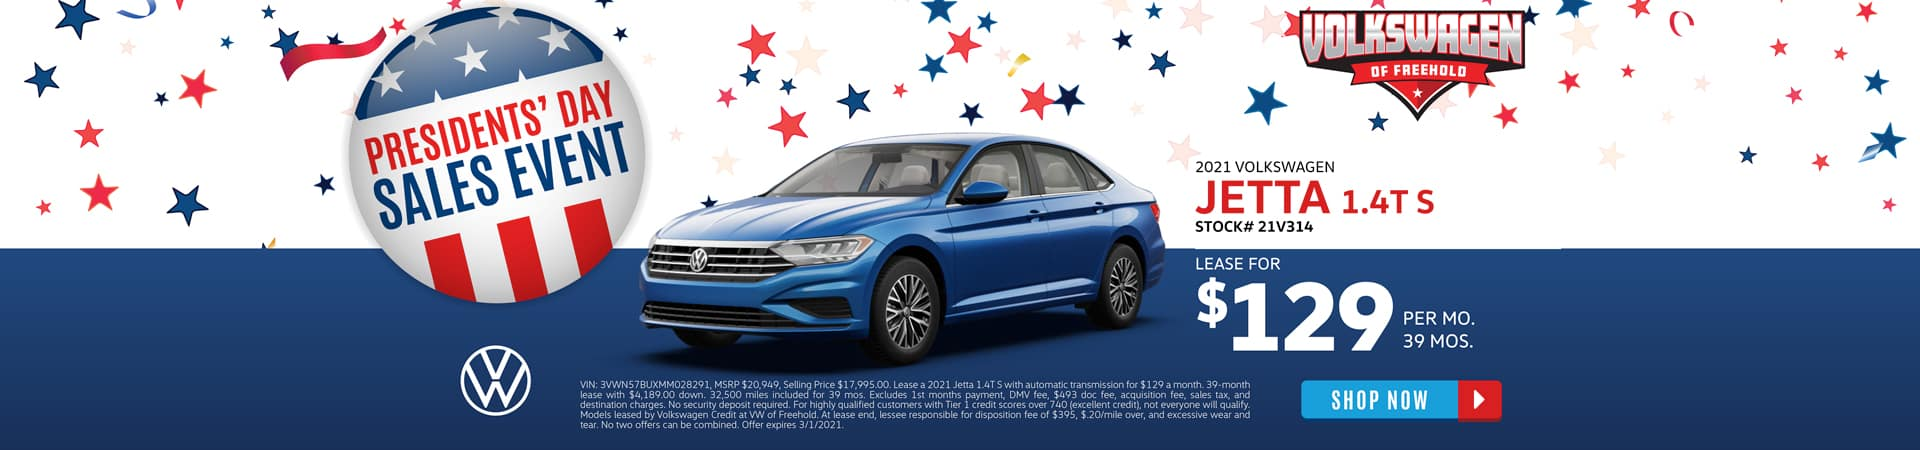 2021.01.29-VW-of-Freehold-Feb-Web-Banners-1-S50690cr_01